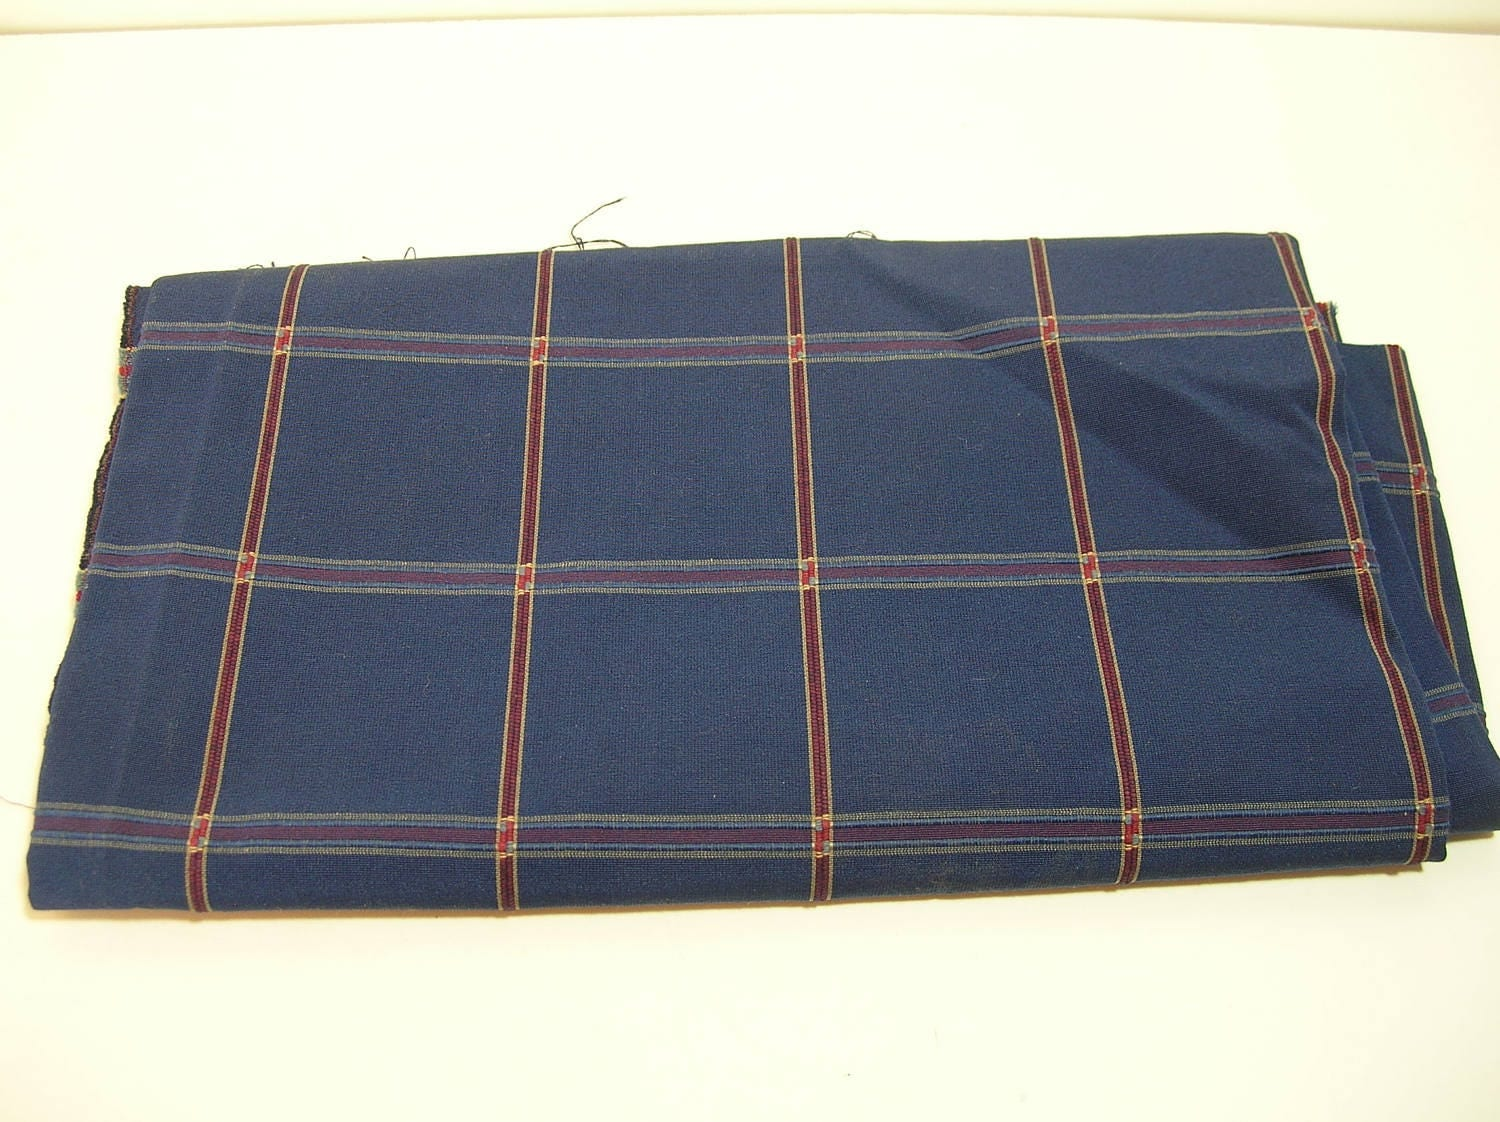 Navy Plaid Upholstery Fabric 3 4 Yard From Fabricandcrafts On Etsy